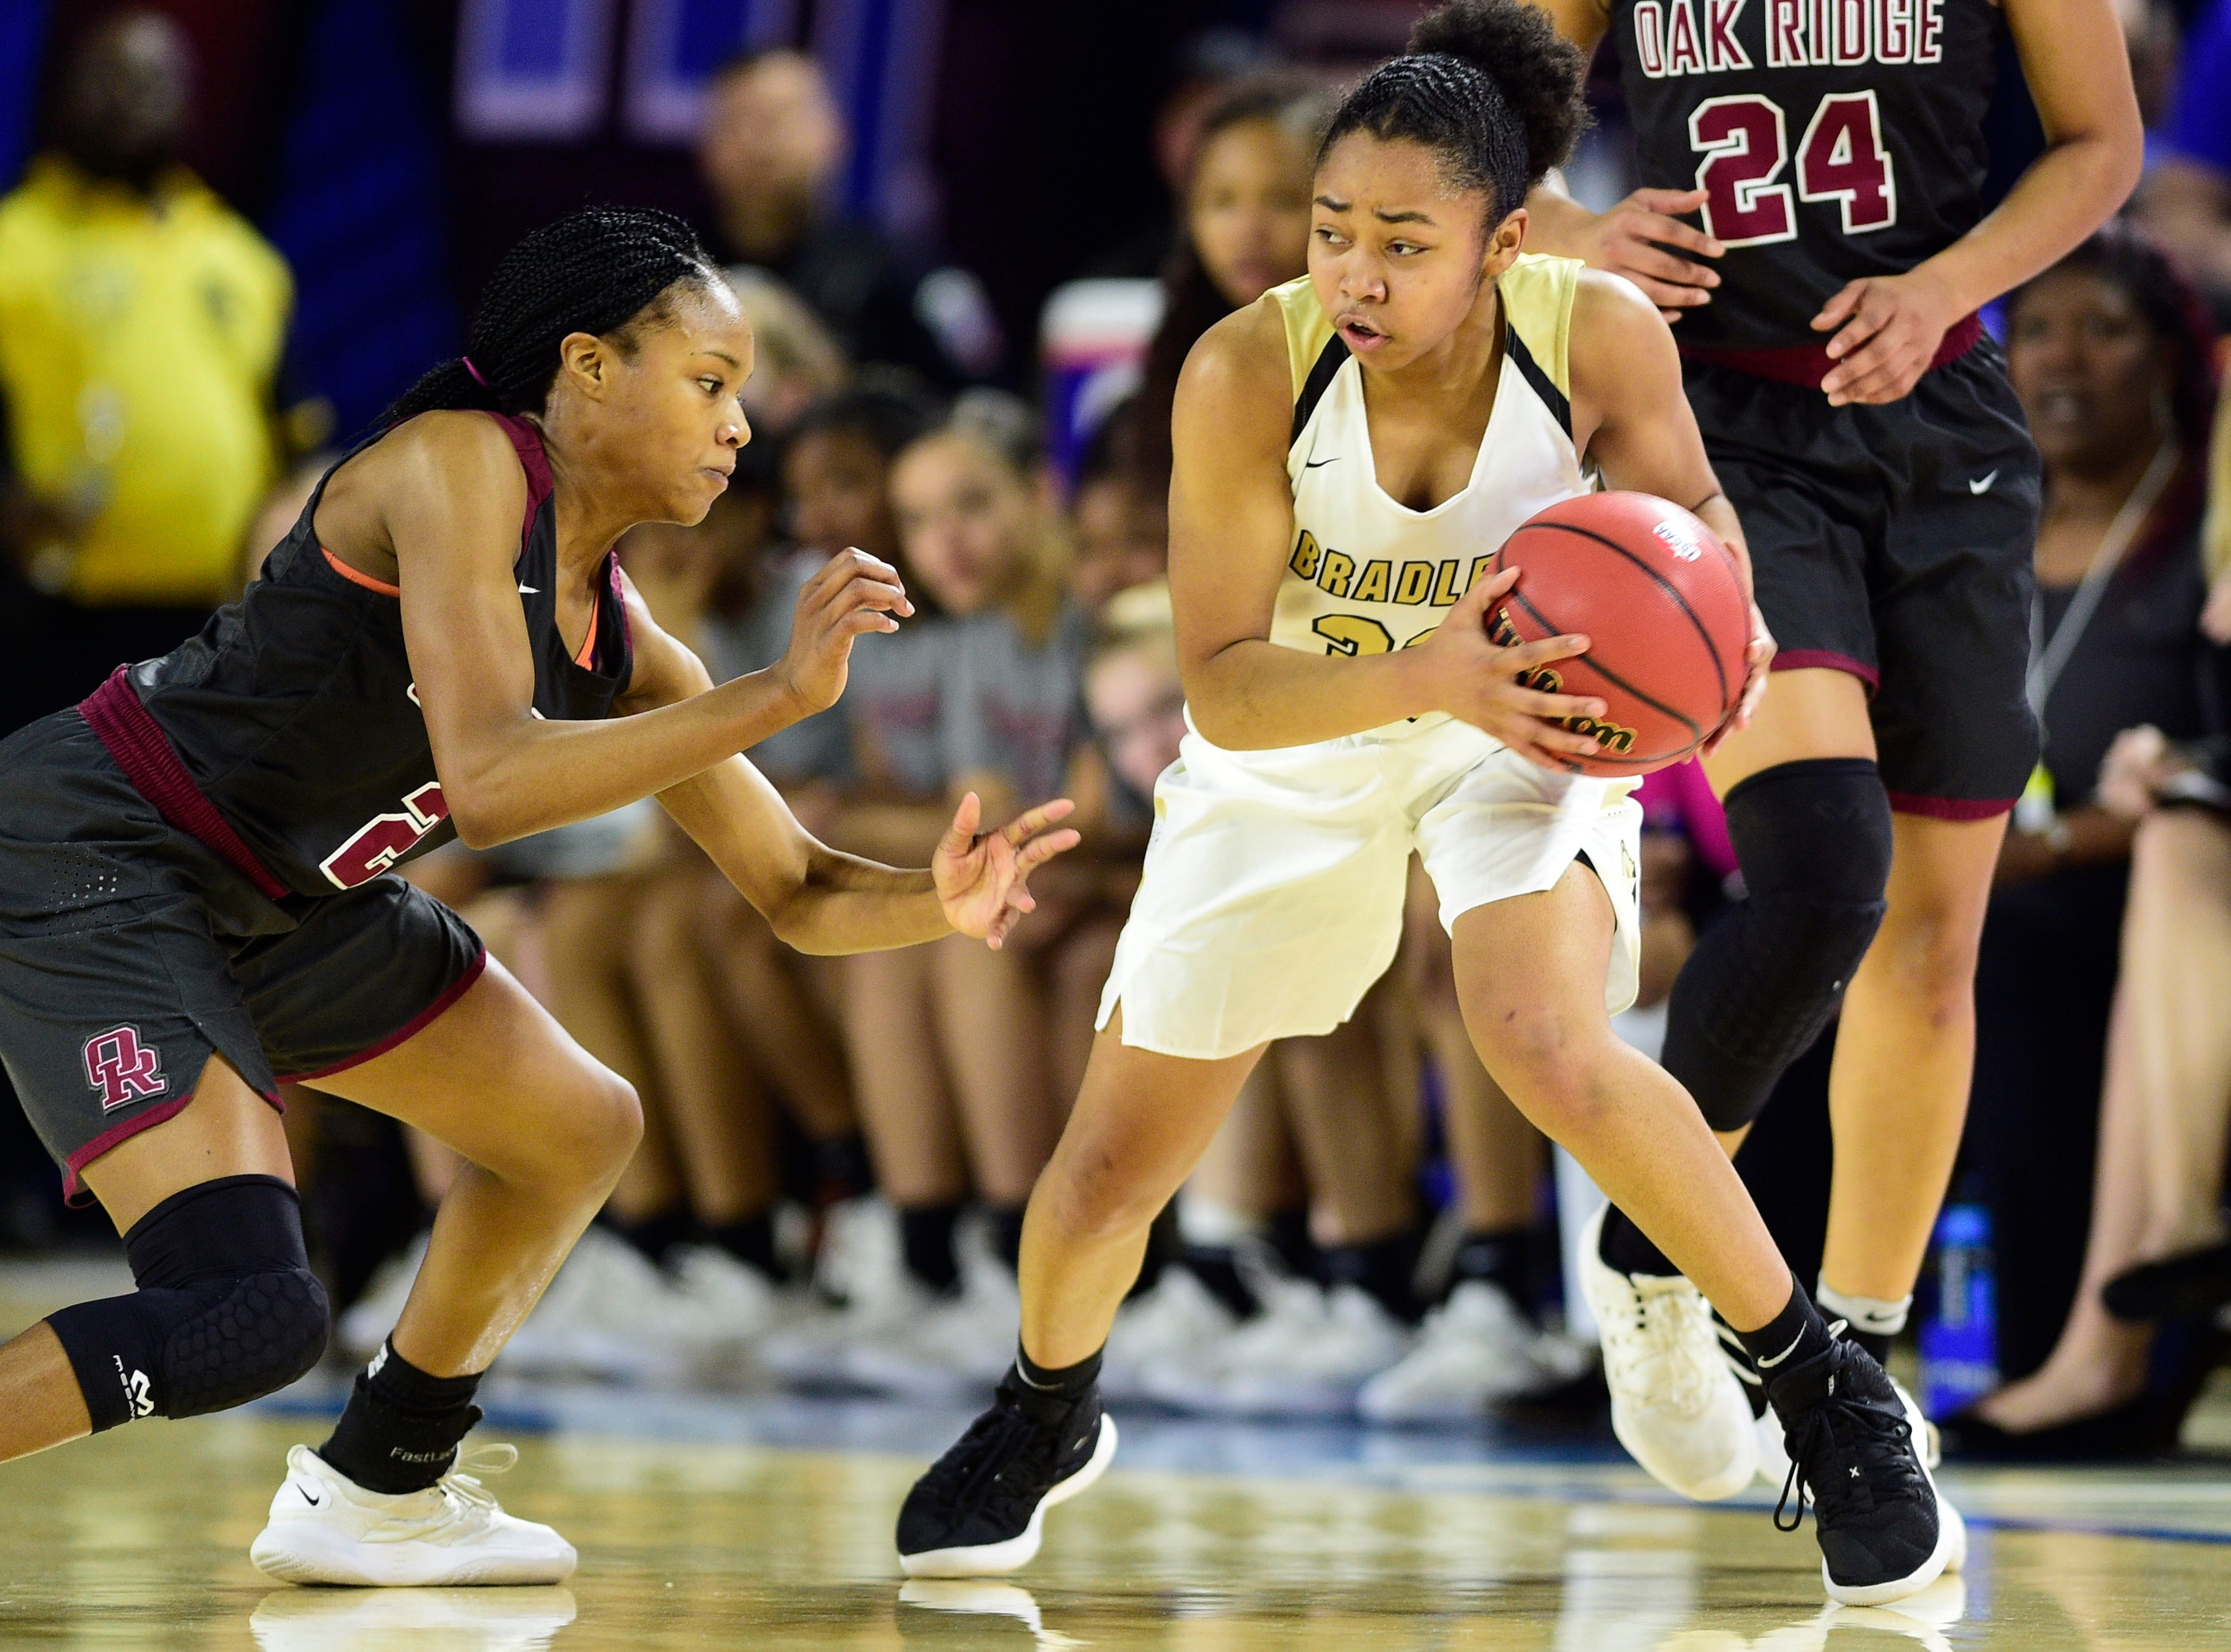 Bradley Central's Jamaryn Blair (33) controls the ball as Oak Ridge's Khamari Mitchell-Steens (2) defends during a game between Oak Ridge and Bradley Central at the TSSAA girls state tournament at the Murphy Center in Murfreesboro, Tennessee on Friday, March 8, 2019.